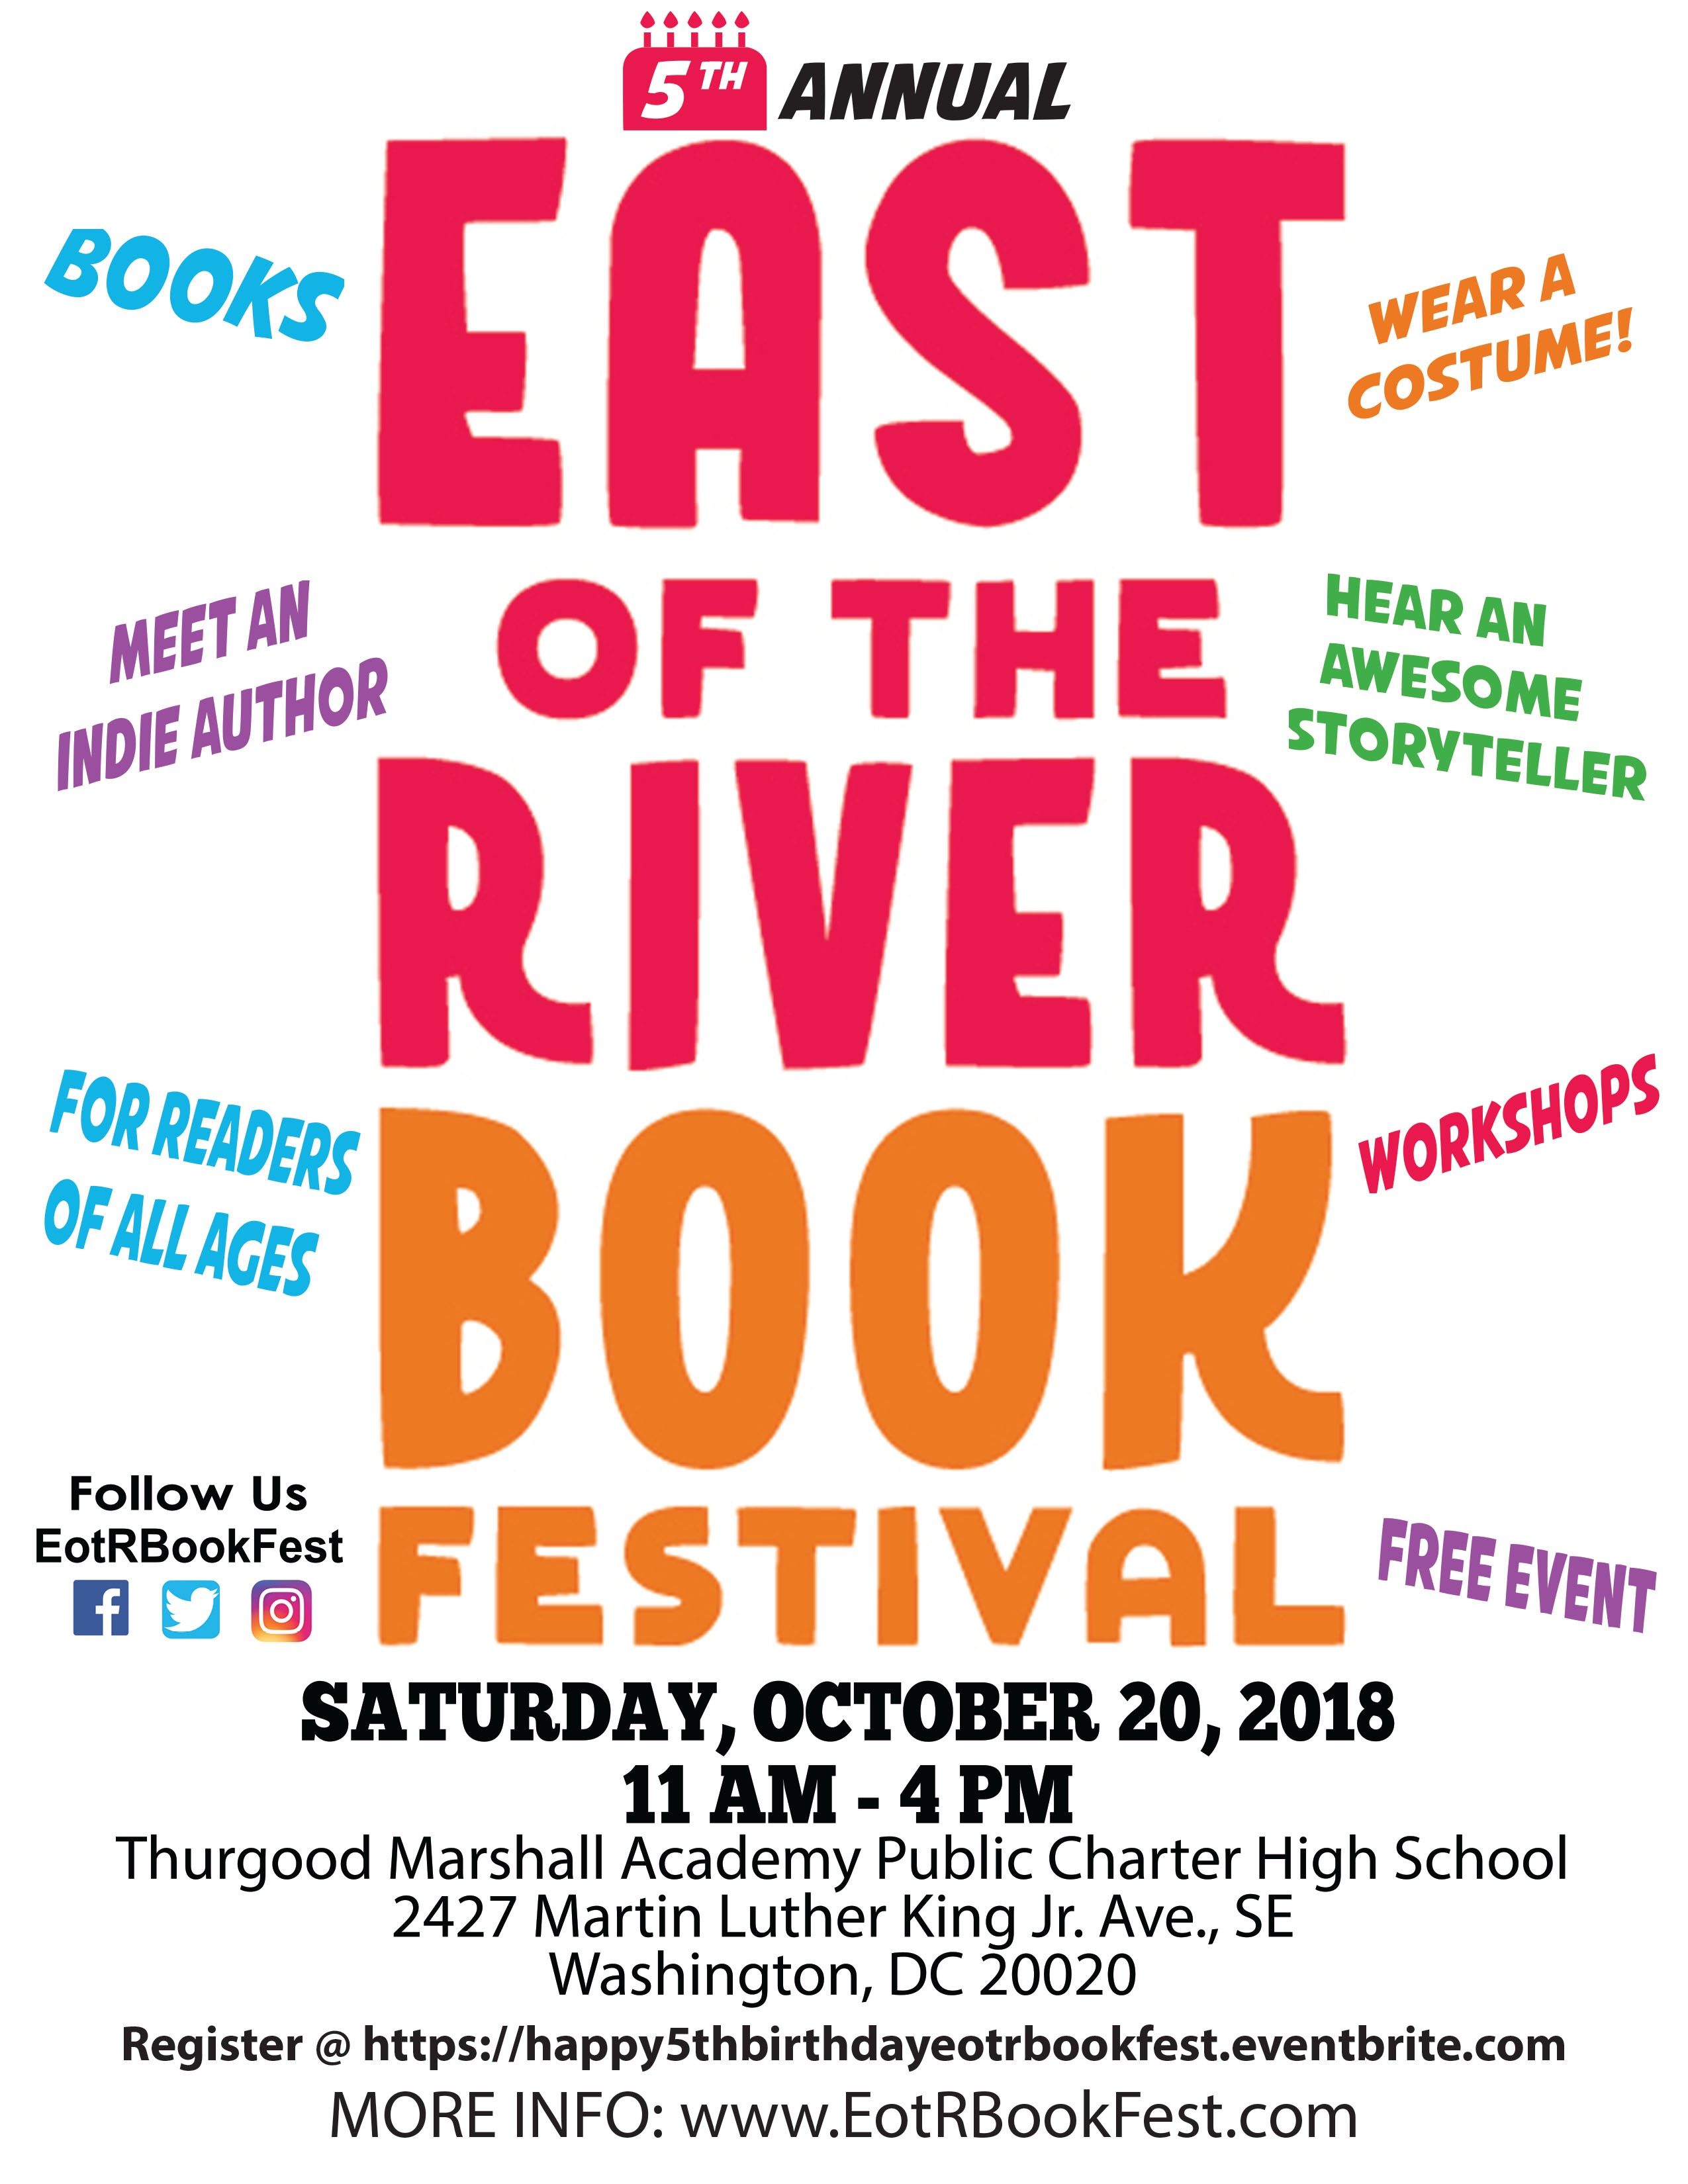 East of the River Book Festival